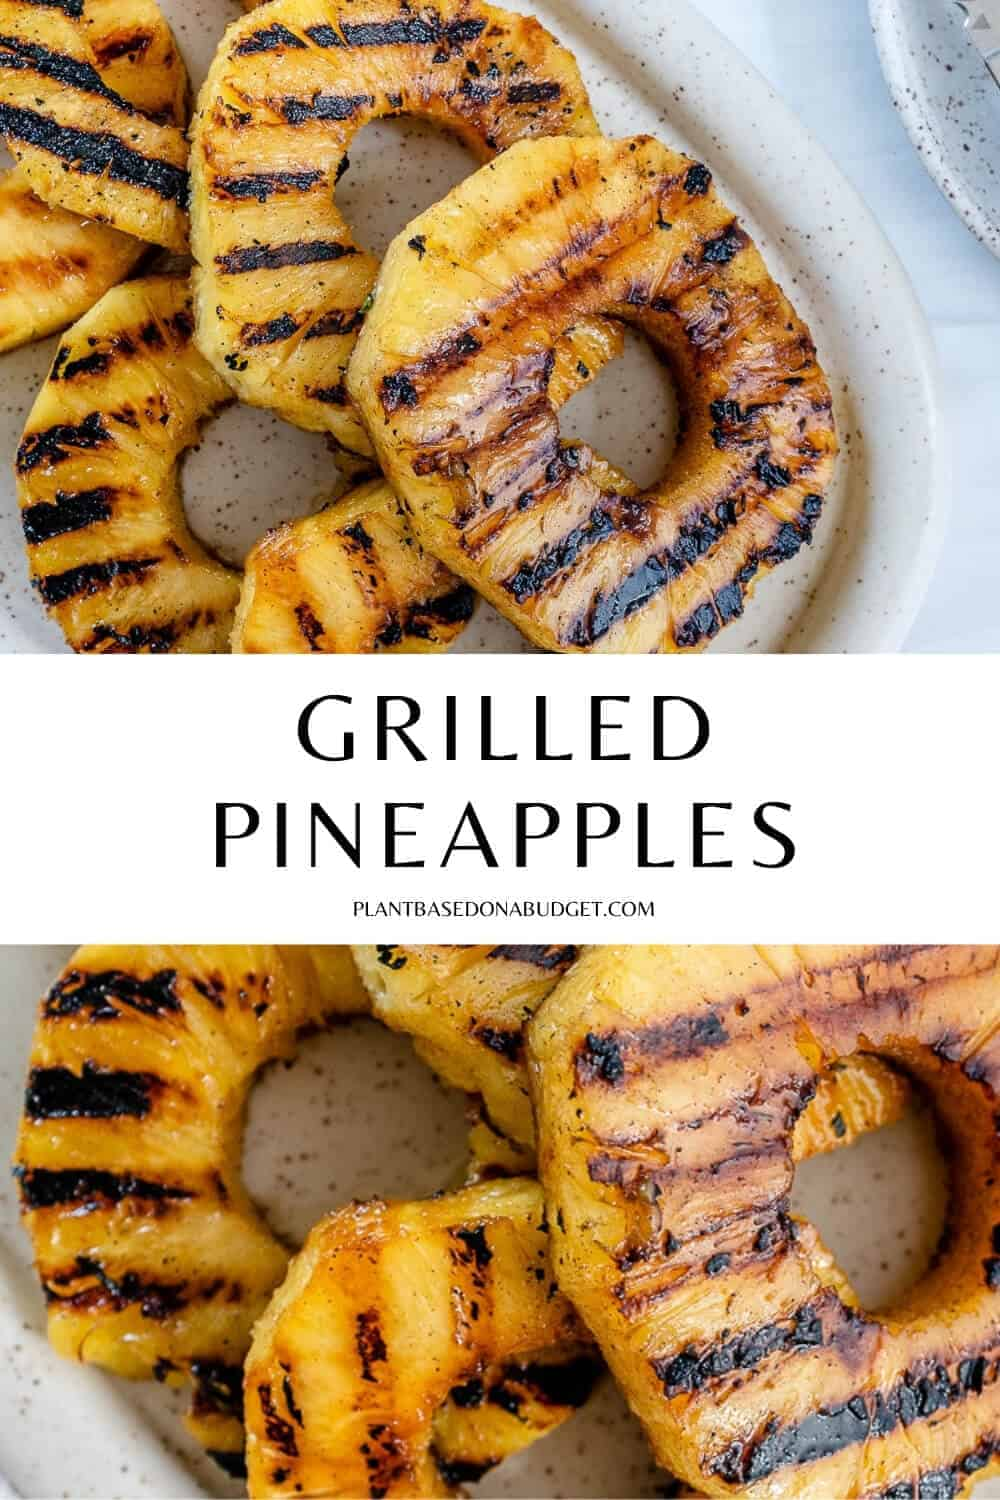 pinterest graphic for grilled pineapples